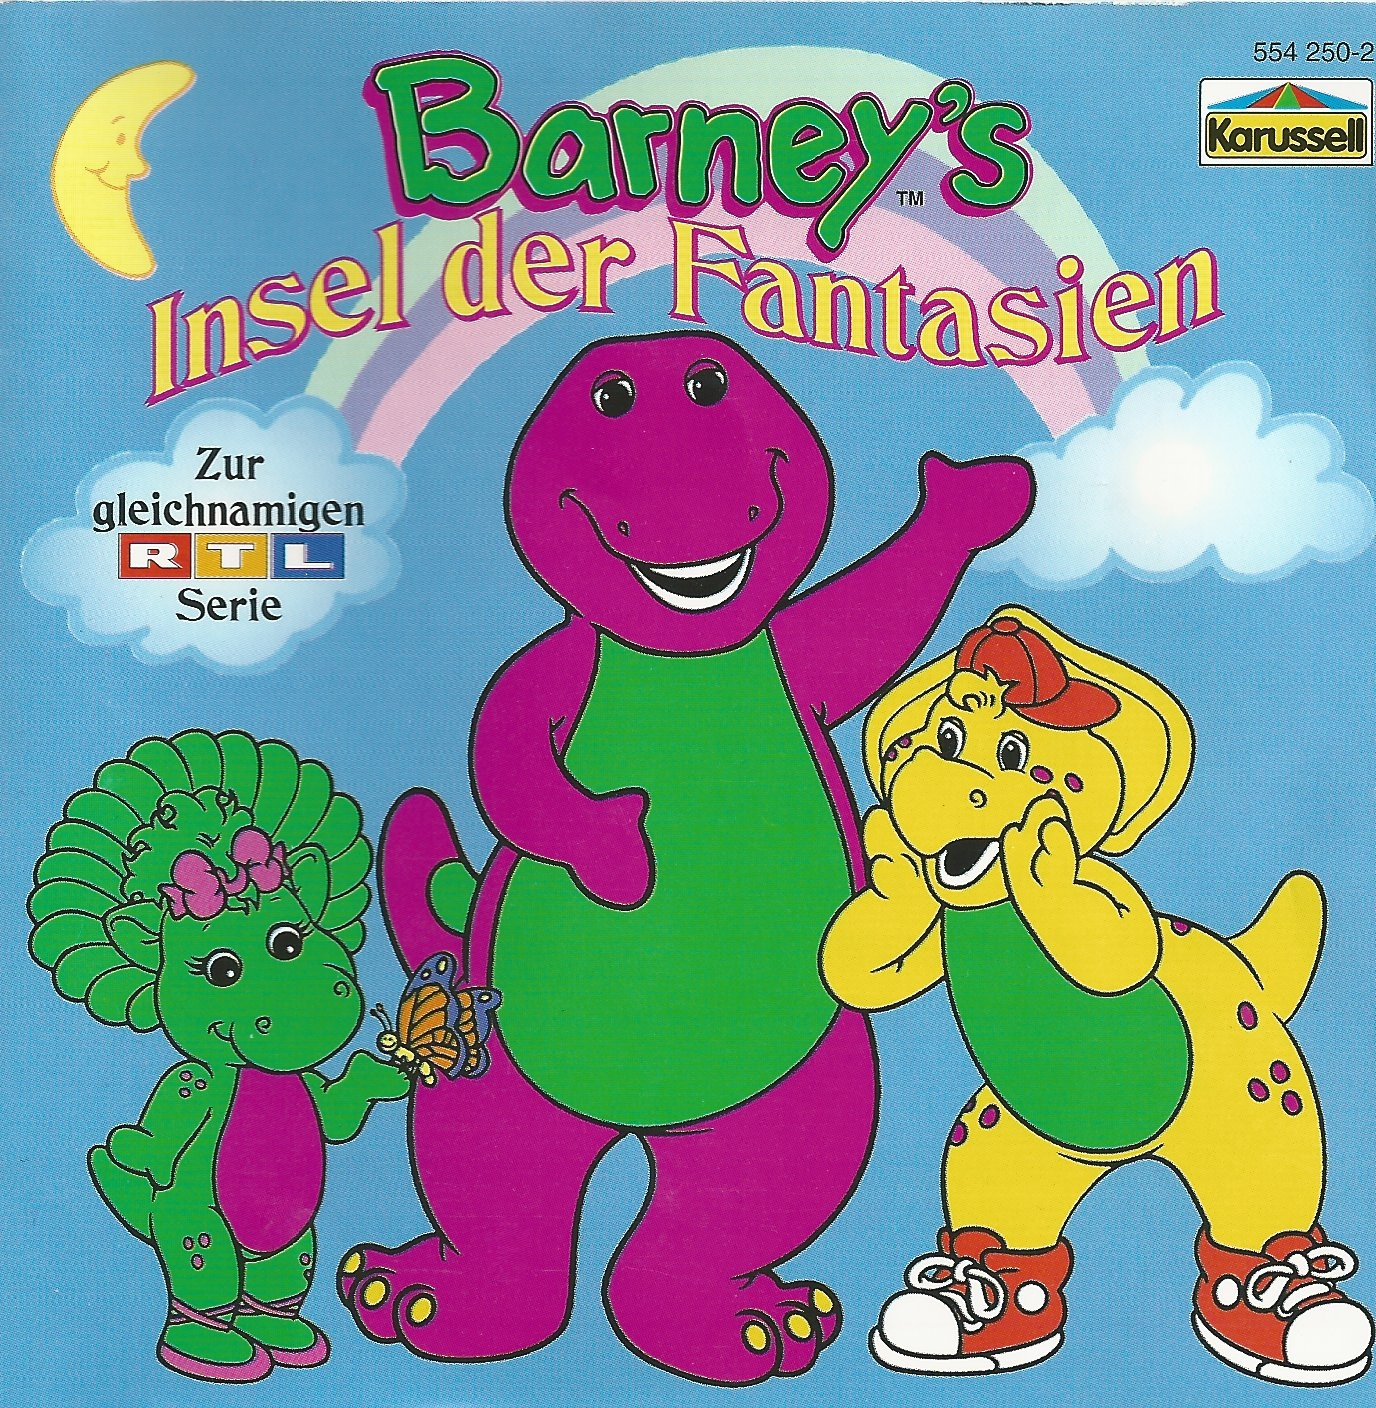 barney discography barney wiki fandom powered by wikia